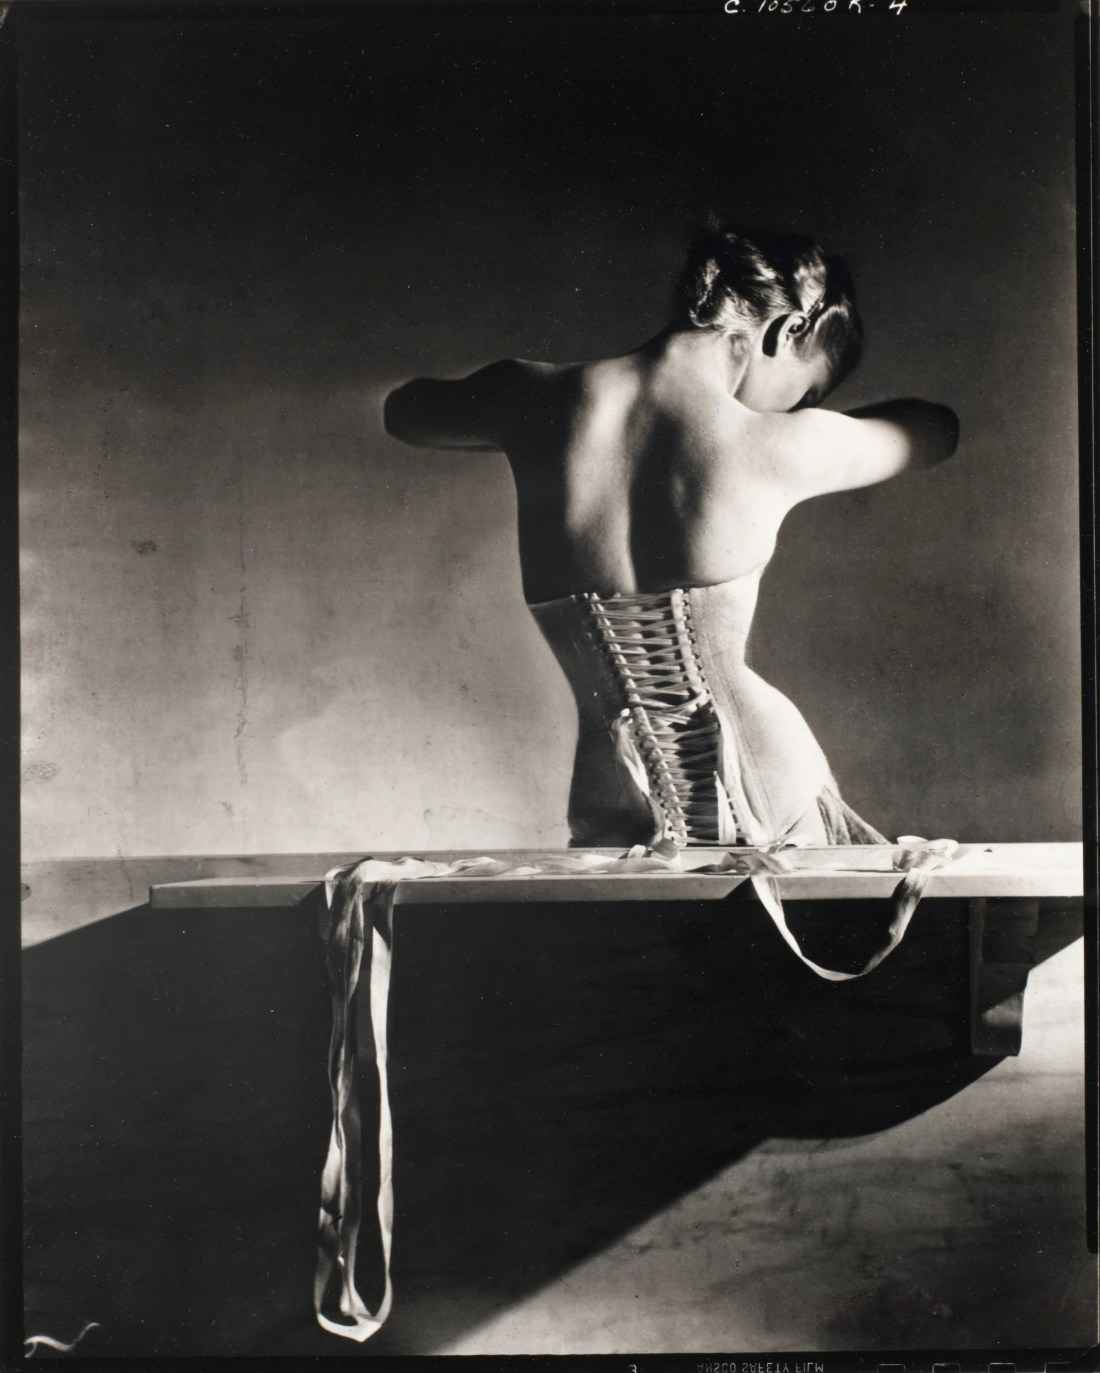 "Horst P. Horst's ""Mainbocher Corset"" is a lush black and white image of a young woman with her back to us. She seems to be sitting on some sort of bench. The ribbons of her white corset are unstrung and draped behind her and over the bench. She hides her face behind her shoulder like a dove tucks its beak into its wing."